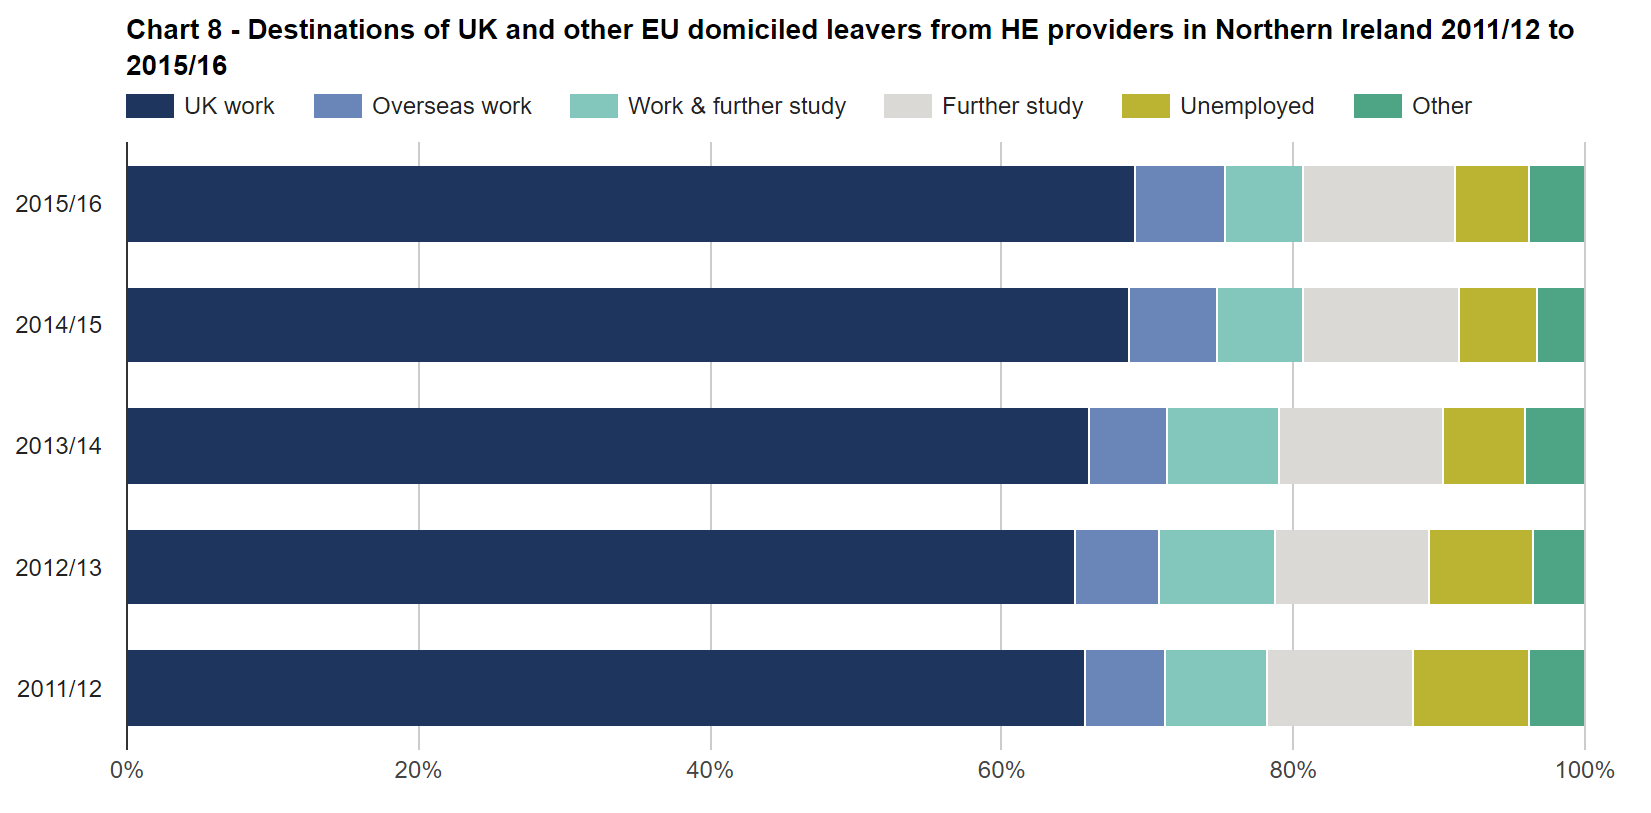 SFR245: Chart 8 - Destinations of UK and other EU domiciled leavers from HE providers in Northern Ireland 2011/12 to 2015/16